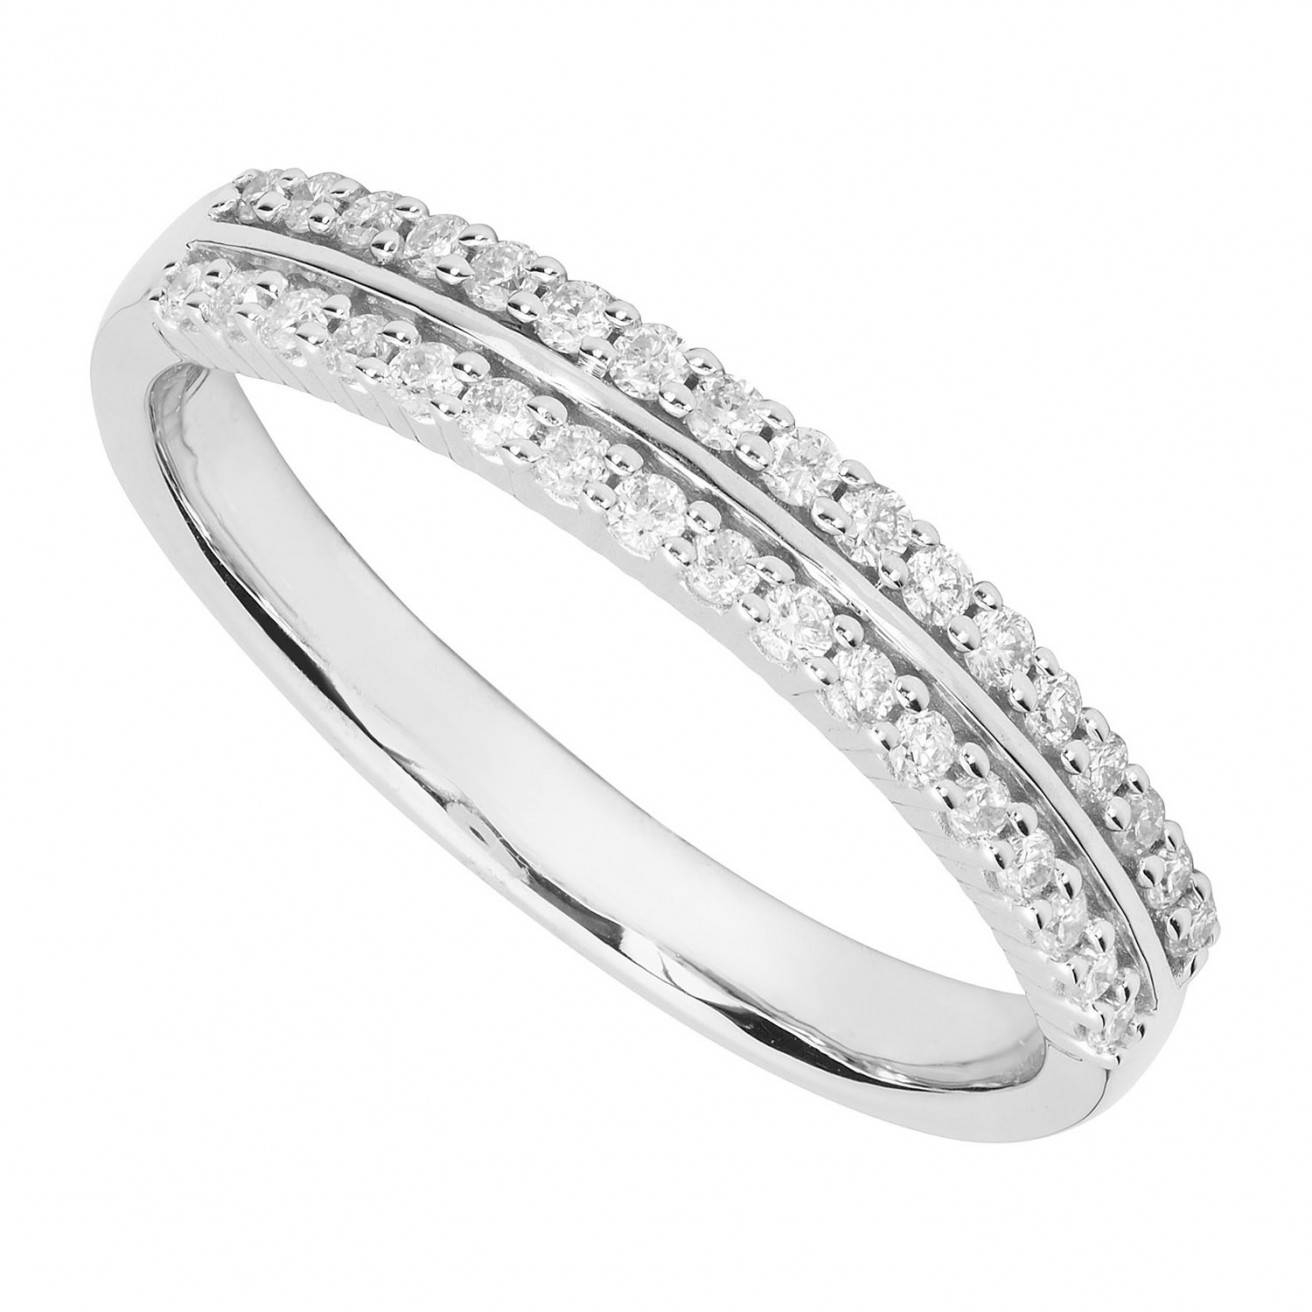 Buy A Diamond Wedding Ring Online – Fraser Hart Intended For Diamonds Wedding Rings (View 1 of 15)